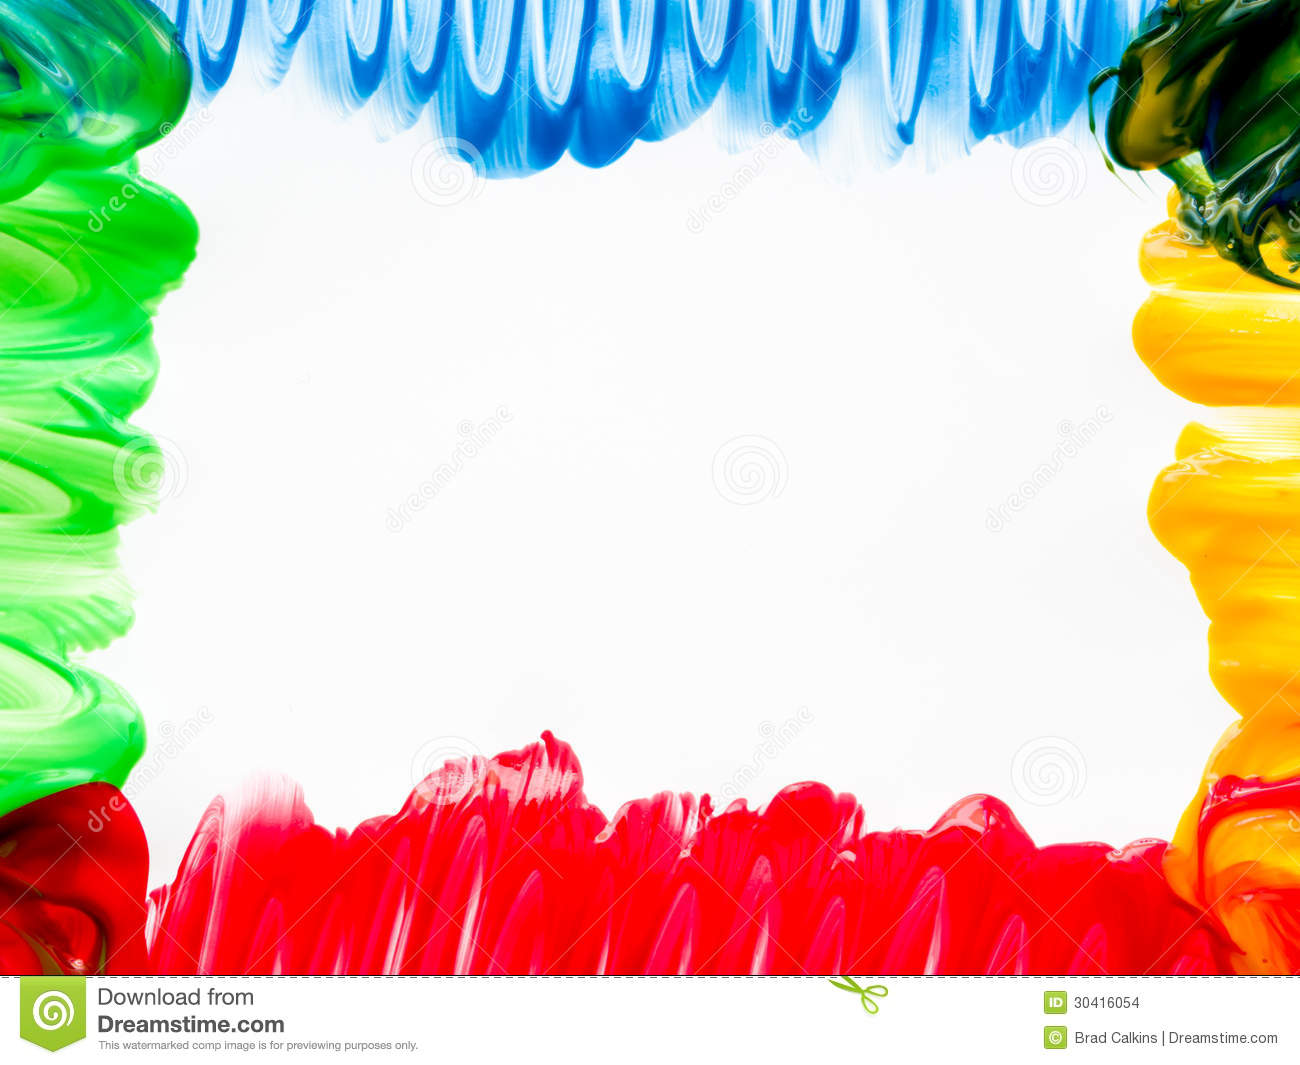 Finger painting frame stock photo. Image of green, color - 30416054